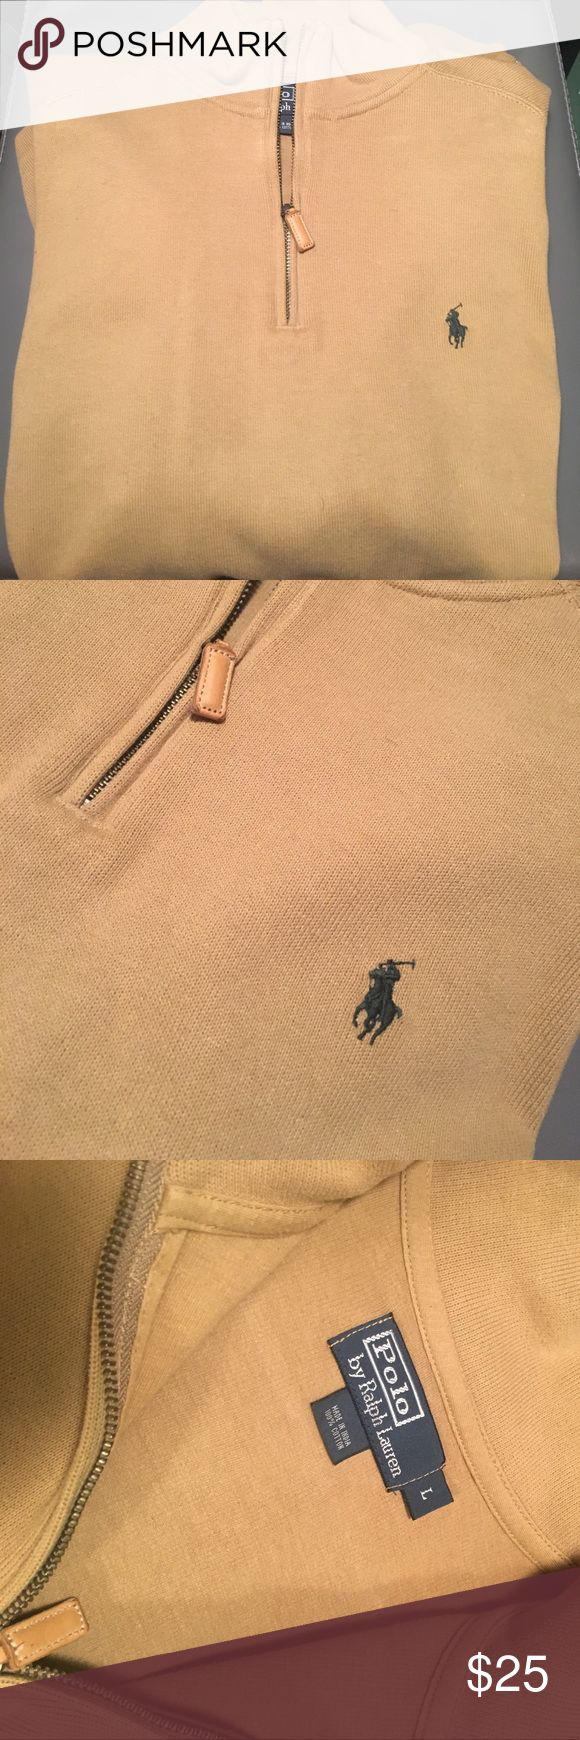 Polo Pullover Tan pullover jacket; worn three times Polo by Ralph Lauren Jackets & Coats Lightweight & Shirt Jackets